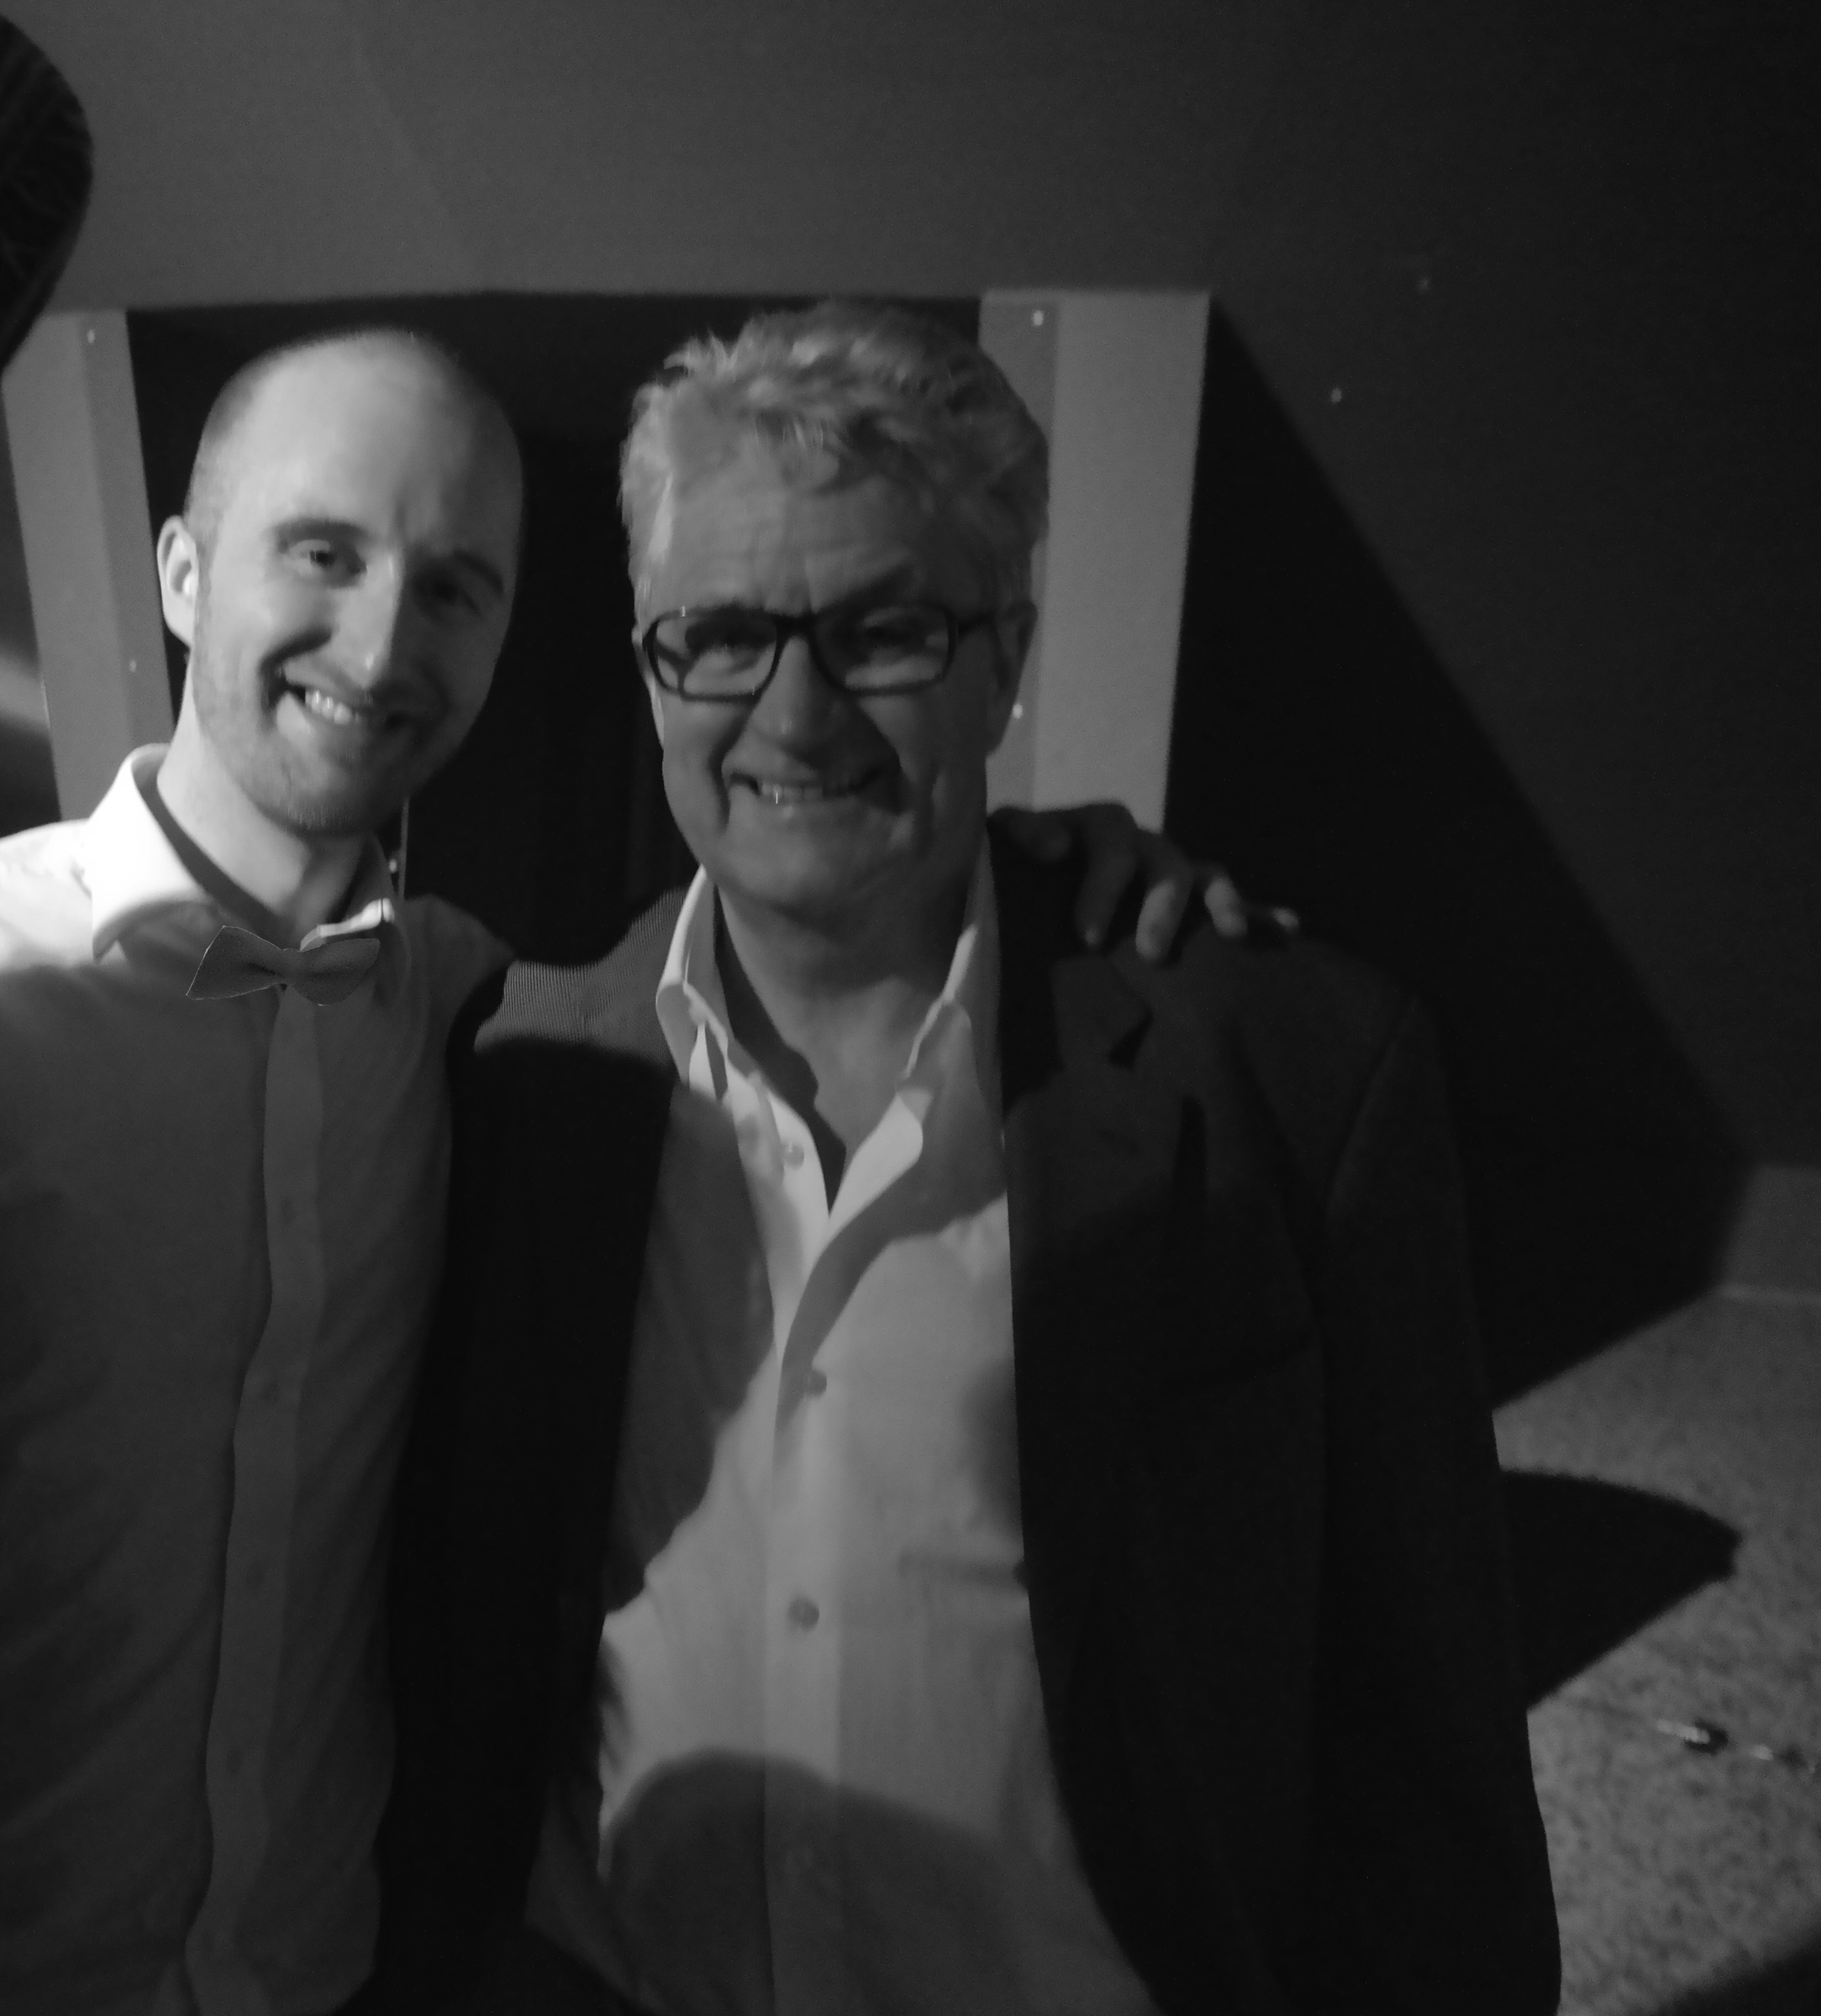 Festival Awards / Insights' Tom Lawson and Melvin Benn